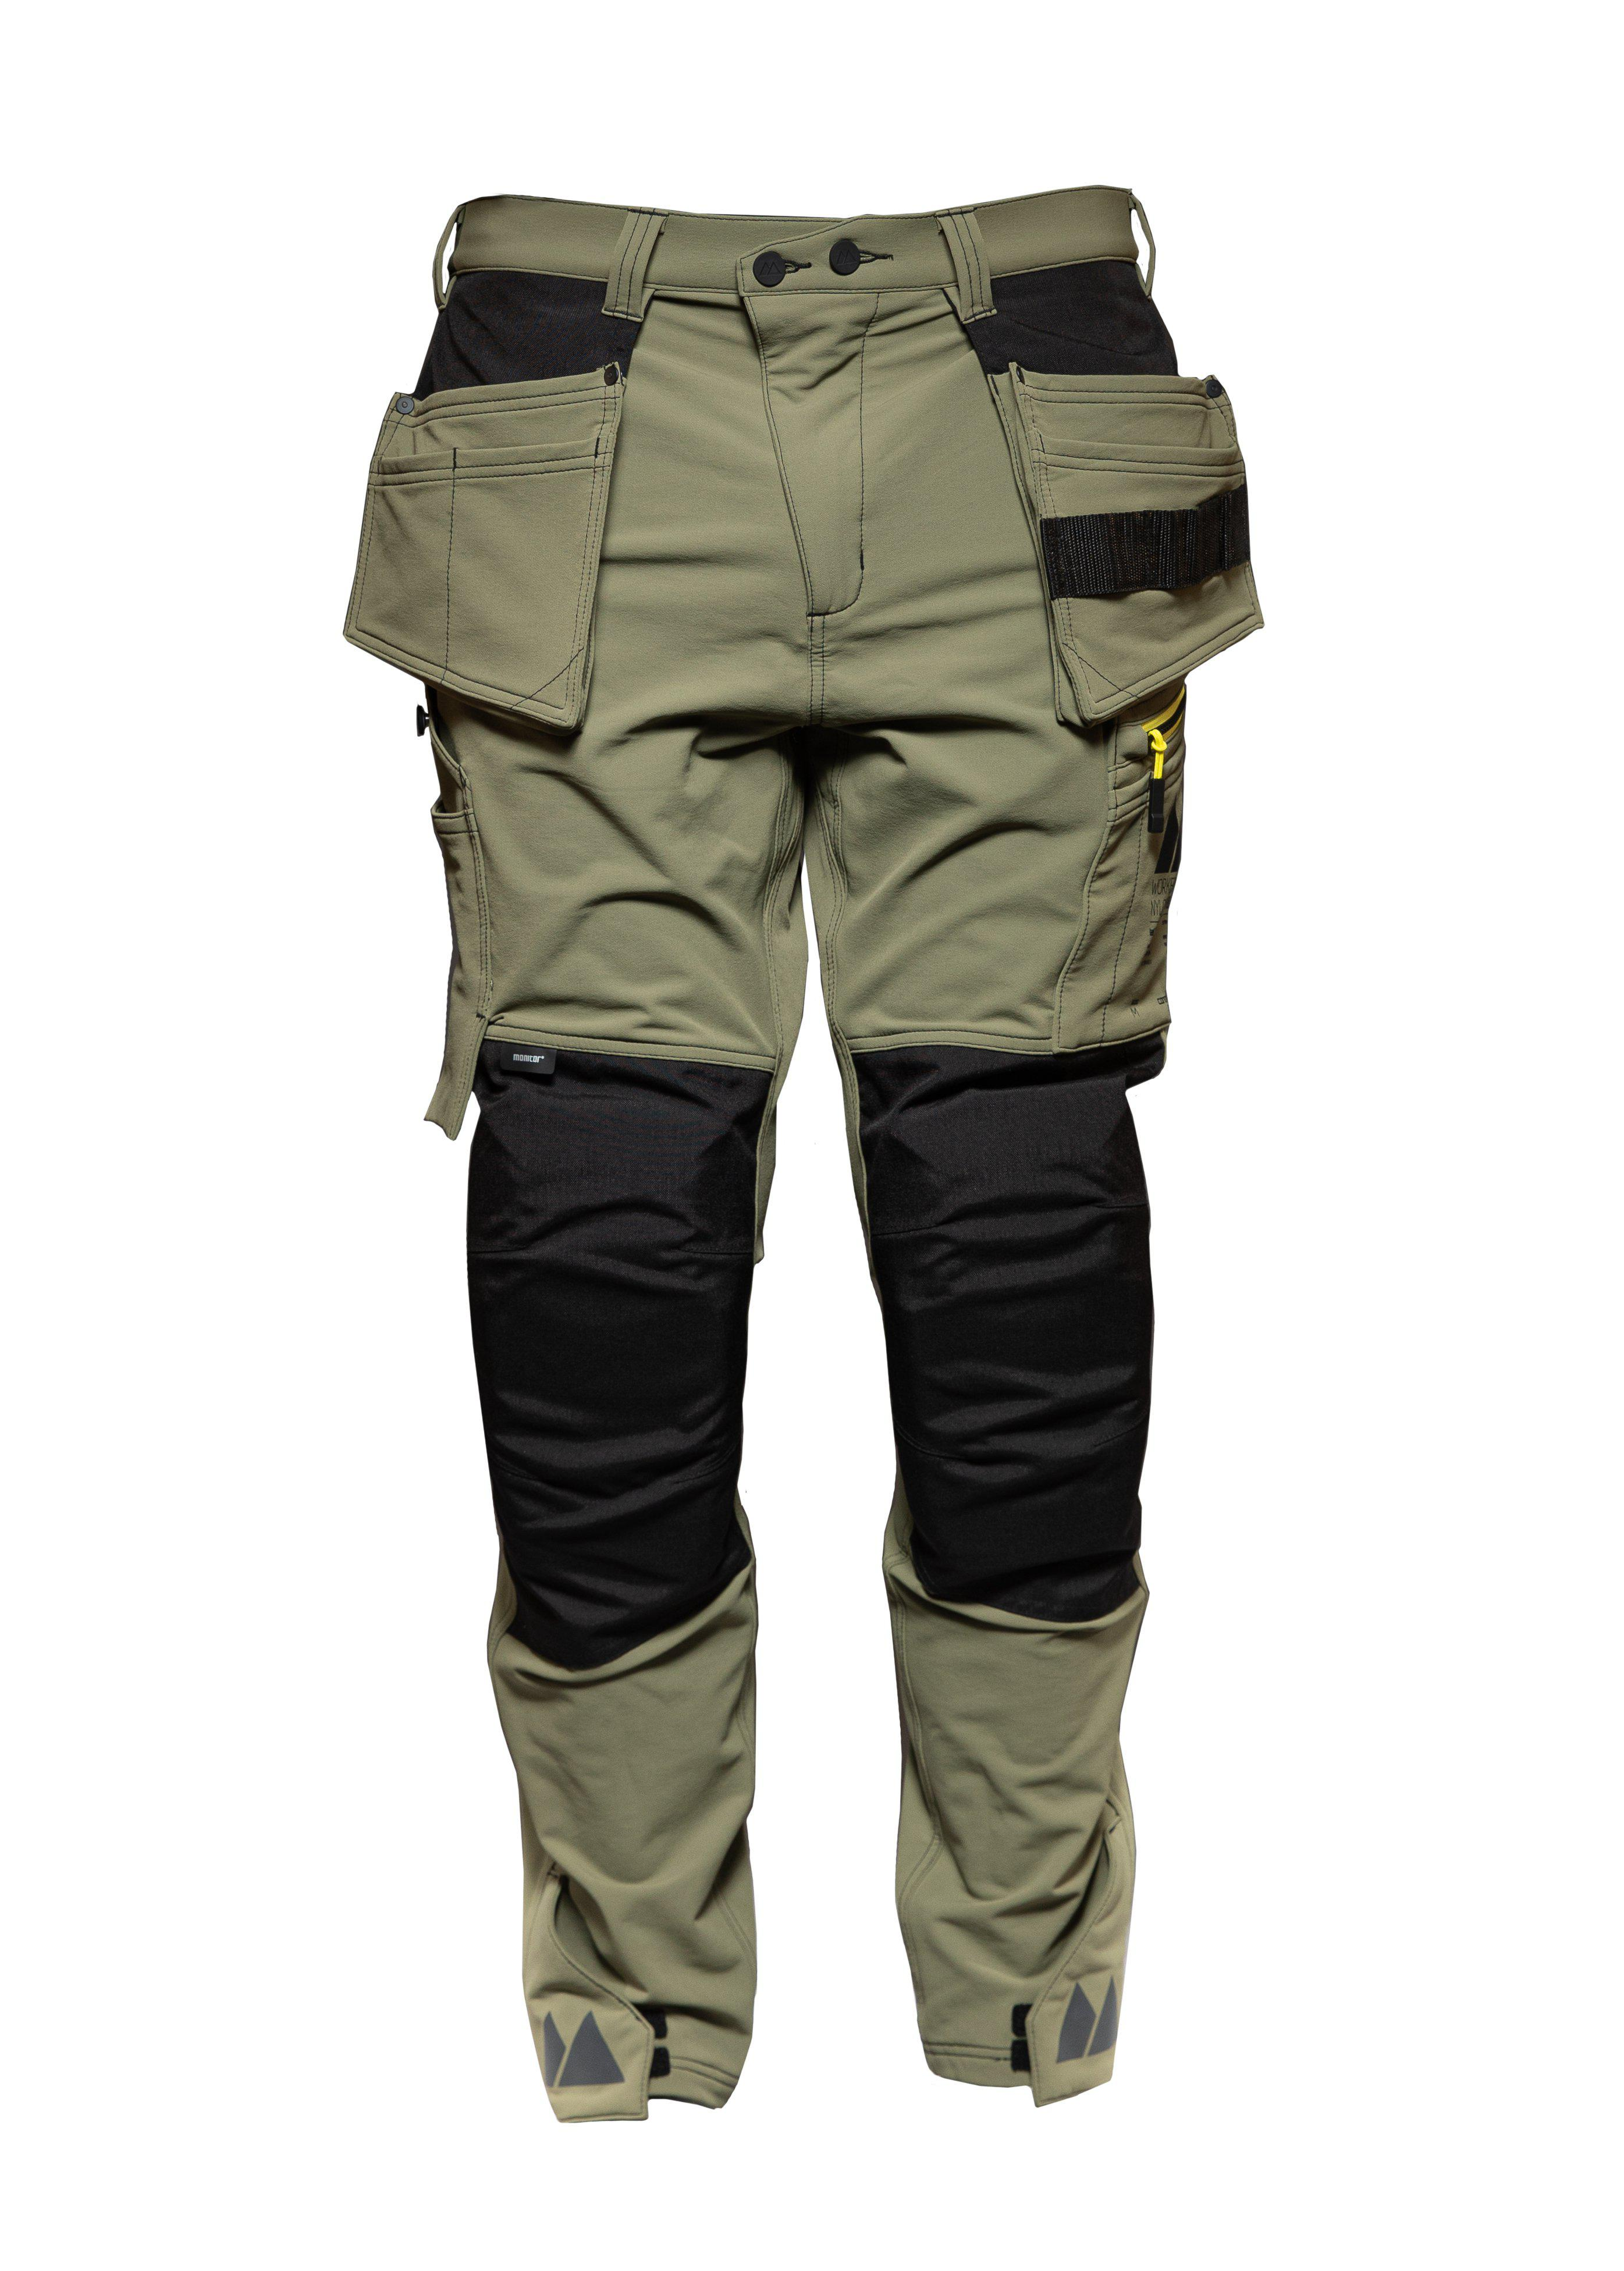 Versatile 4ws pant, Carpenter pant , Burnt olive green, XS